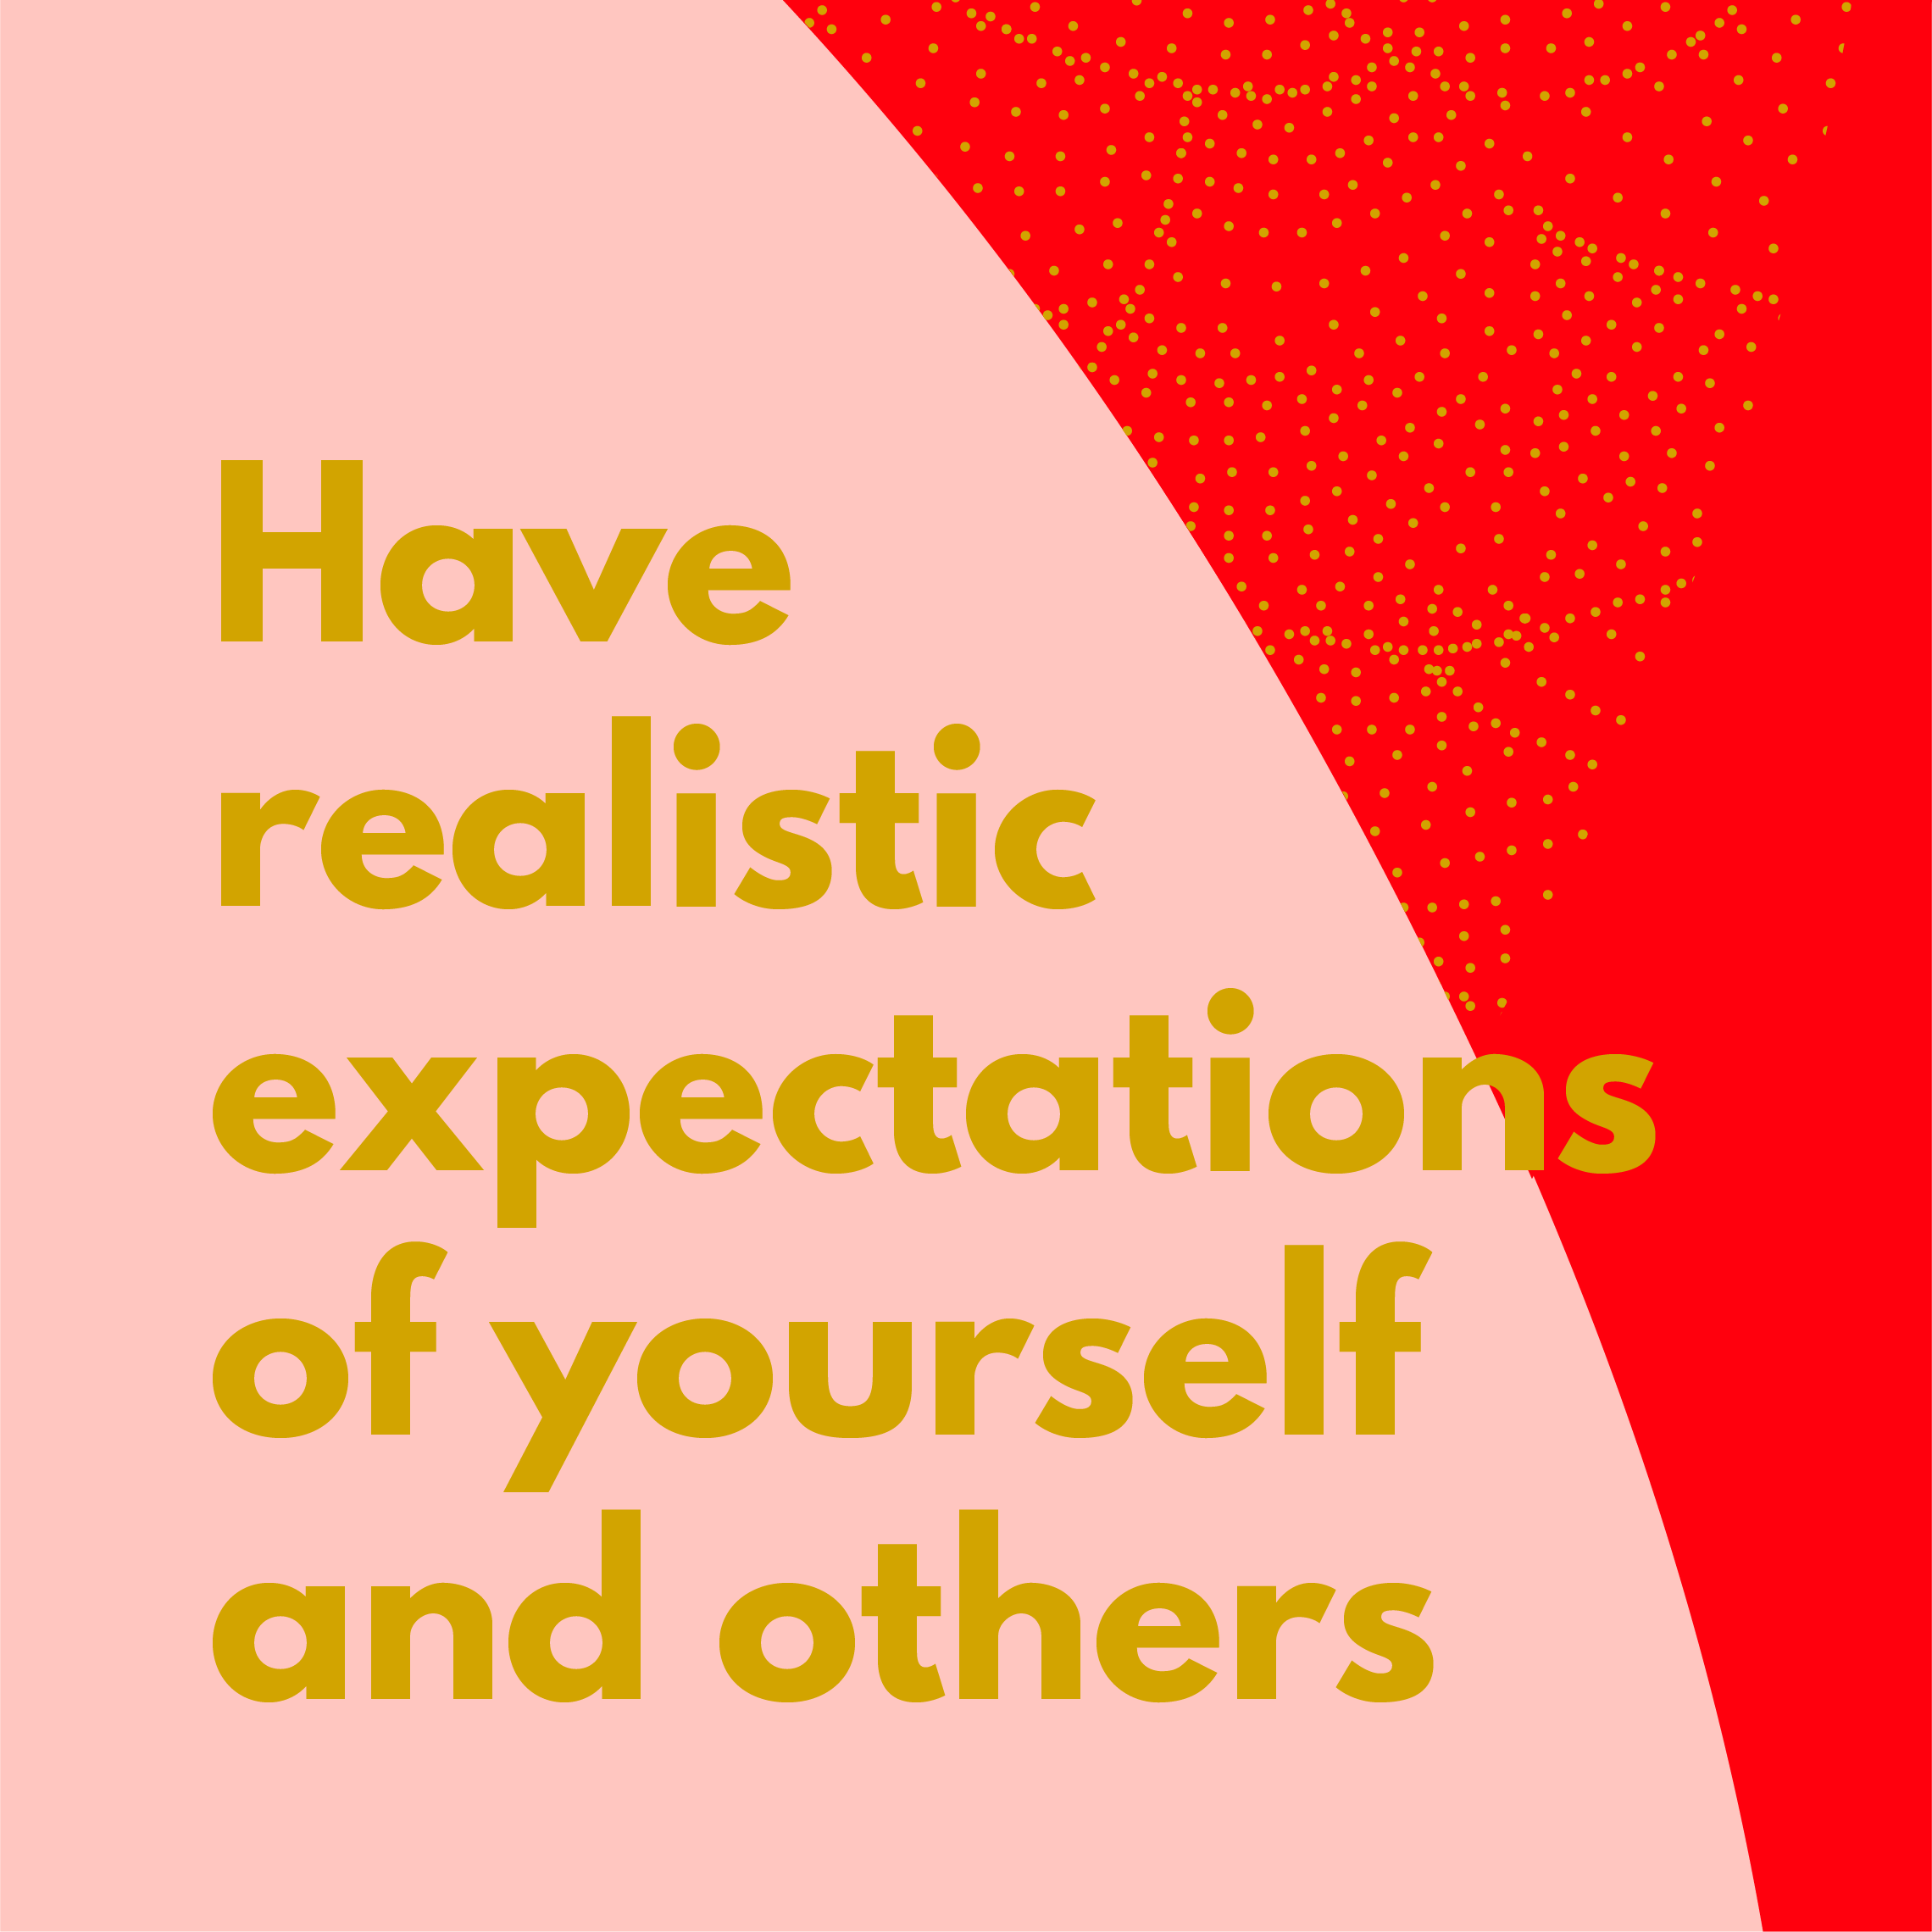 Have realistic expectations of yourself and others